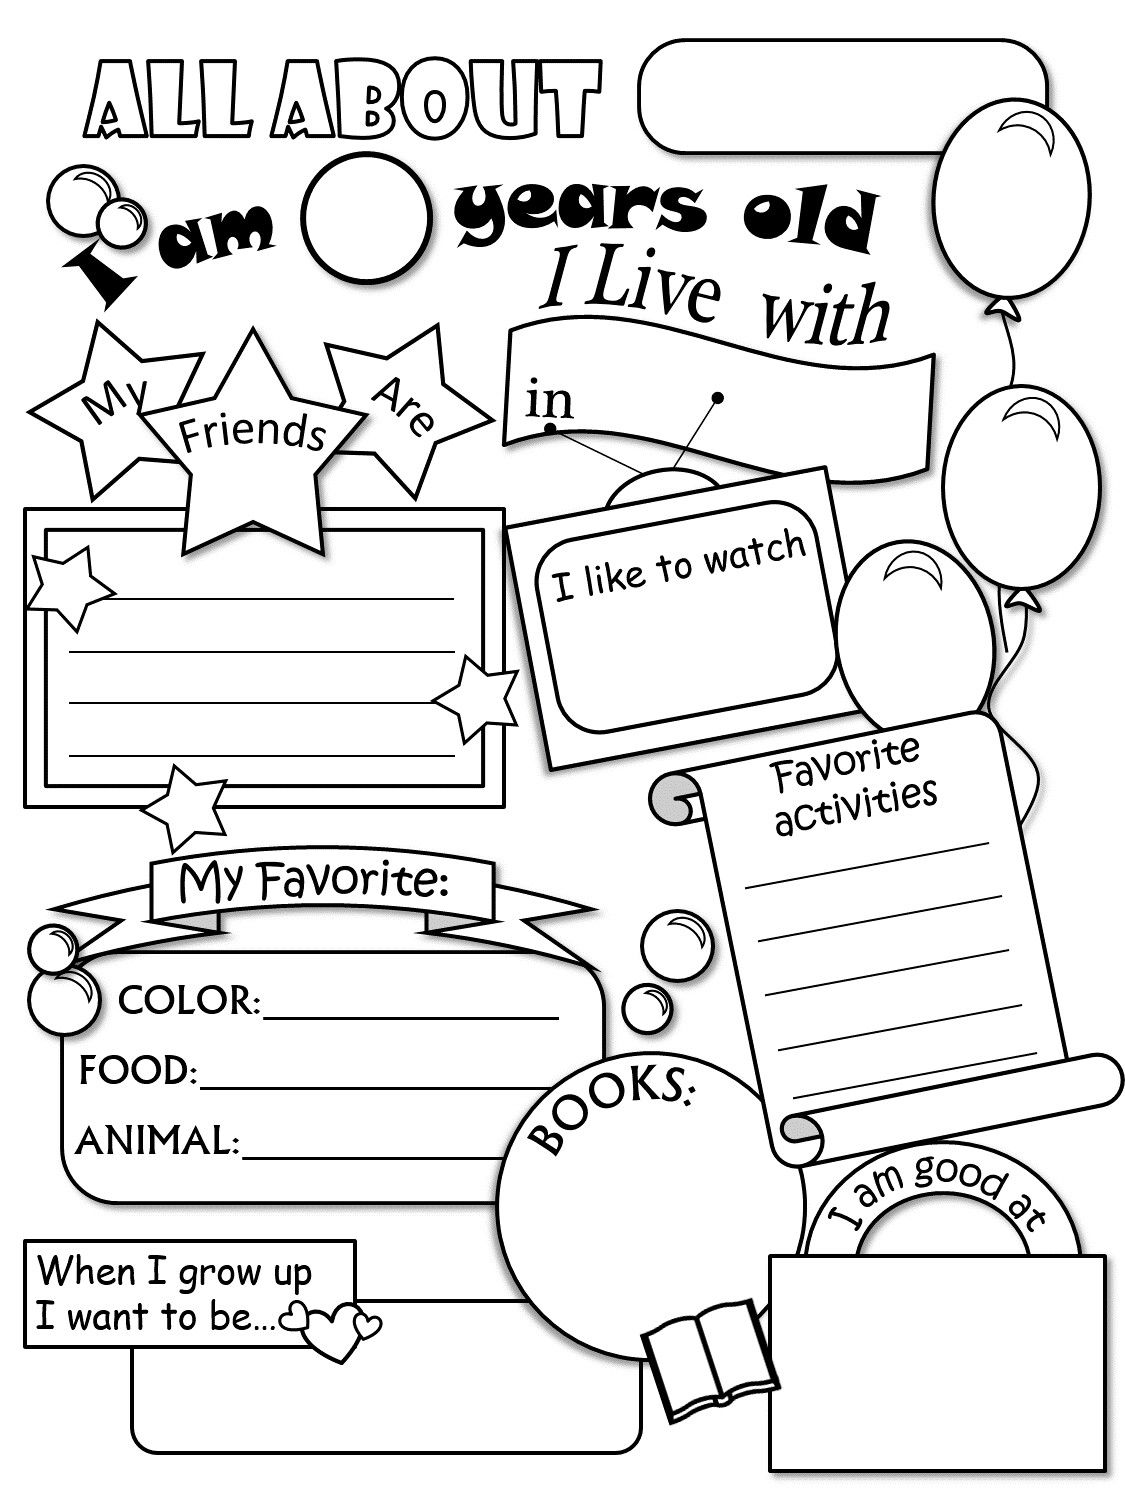 Workbooks learning spanish for kids free worksheets : Pin by Let's Learn Spanish on How To Teach Kids Spanish ...